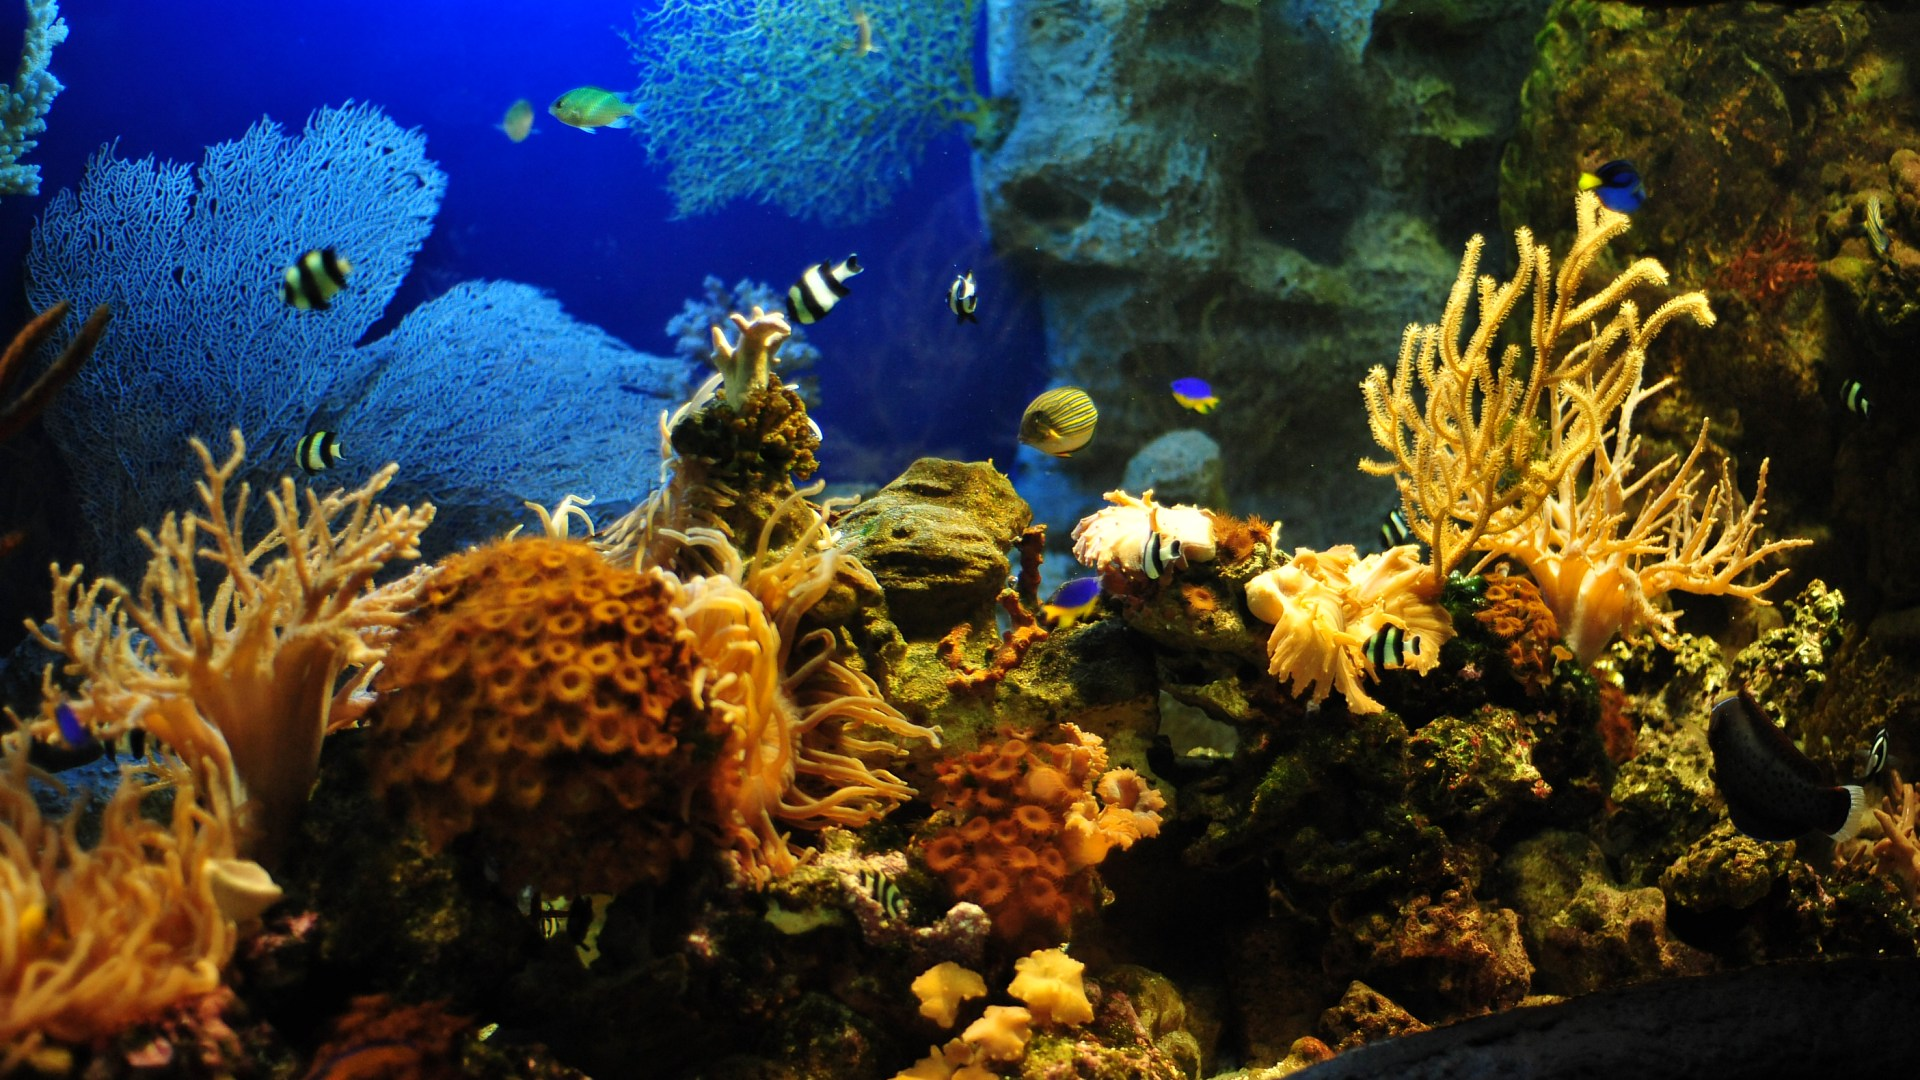 Aquarium screensaver fish tank 1080p hd - Hd Wallpapers 1080p Aquarium Best Hd Wallpapers